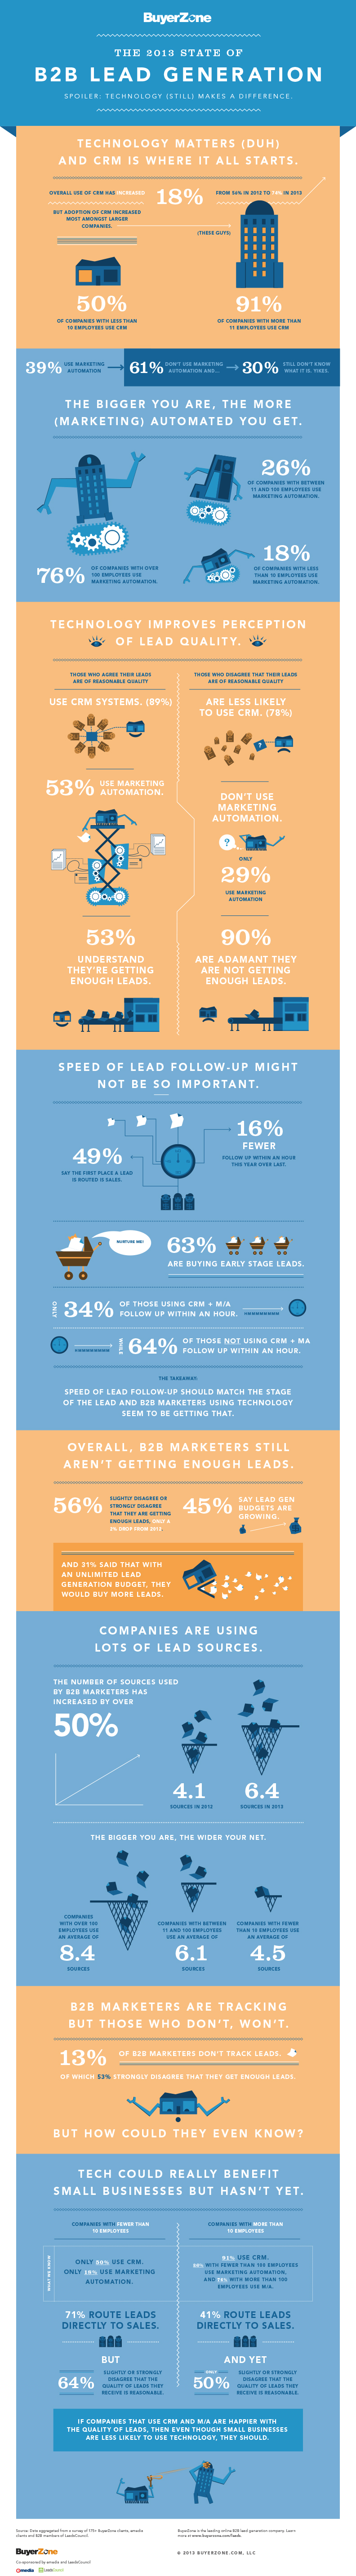 Lead Generation Infographic State of B2b Lead Generation